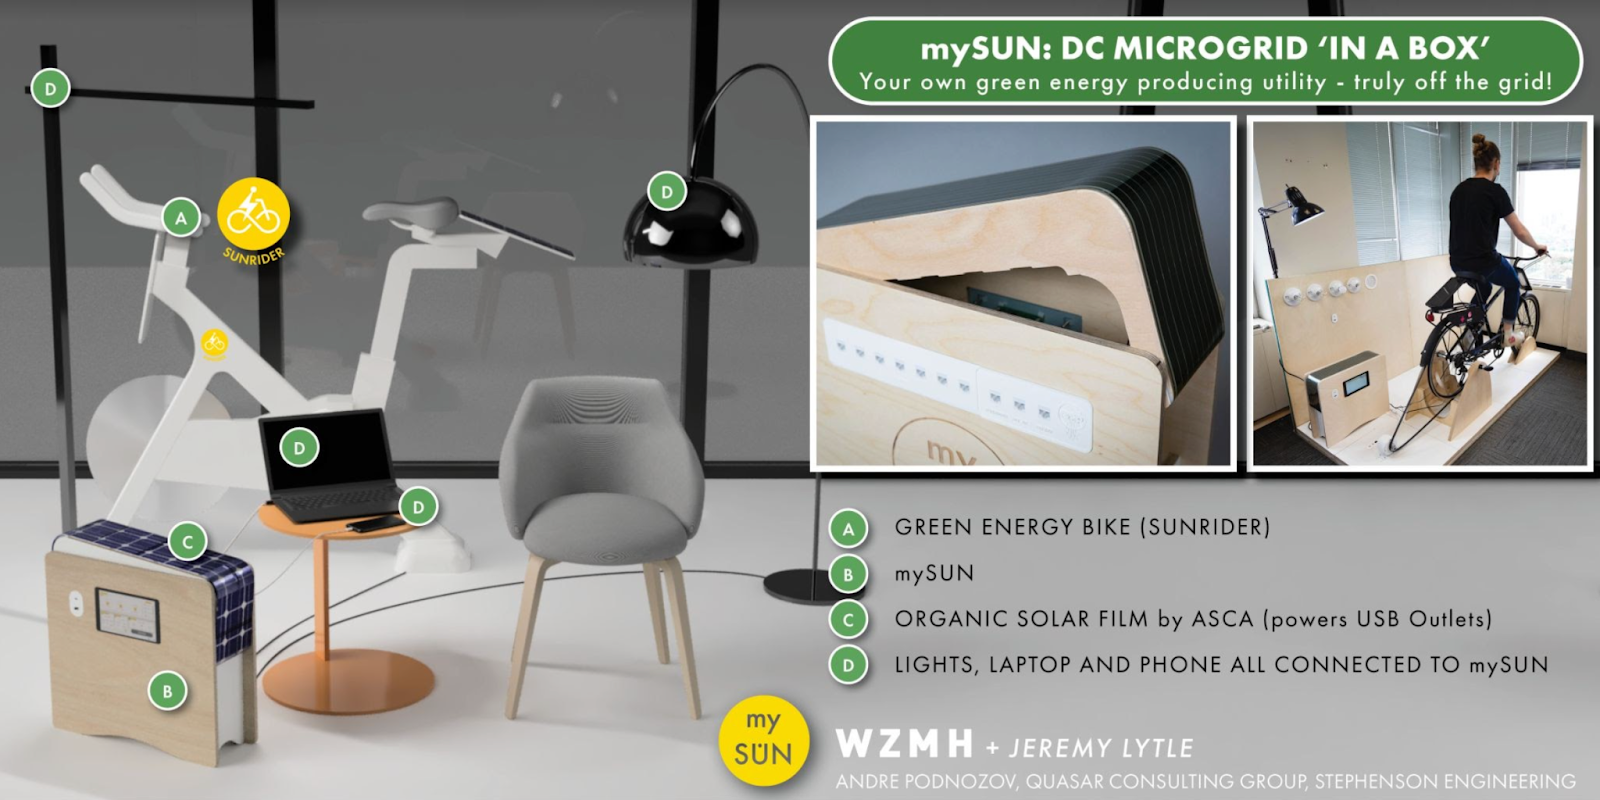 MySUN, a DC microgrid-in-a-box, which stores energy produced from solar or the Sunrider Bike. WZMH states to think of it as your own personal green energy producing utility. It was developed in its Toronto Innovation Lab.